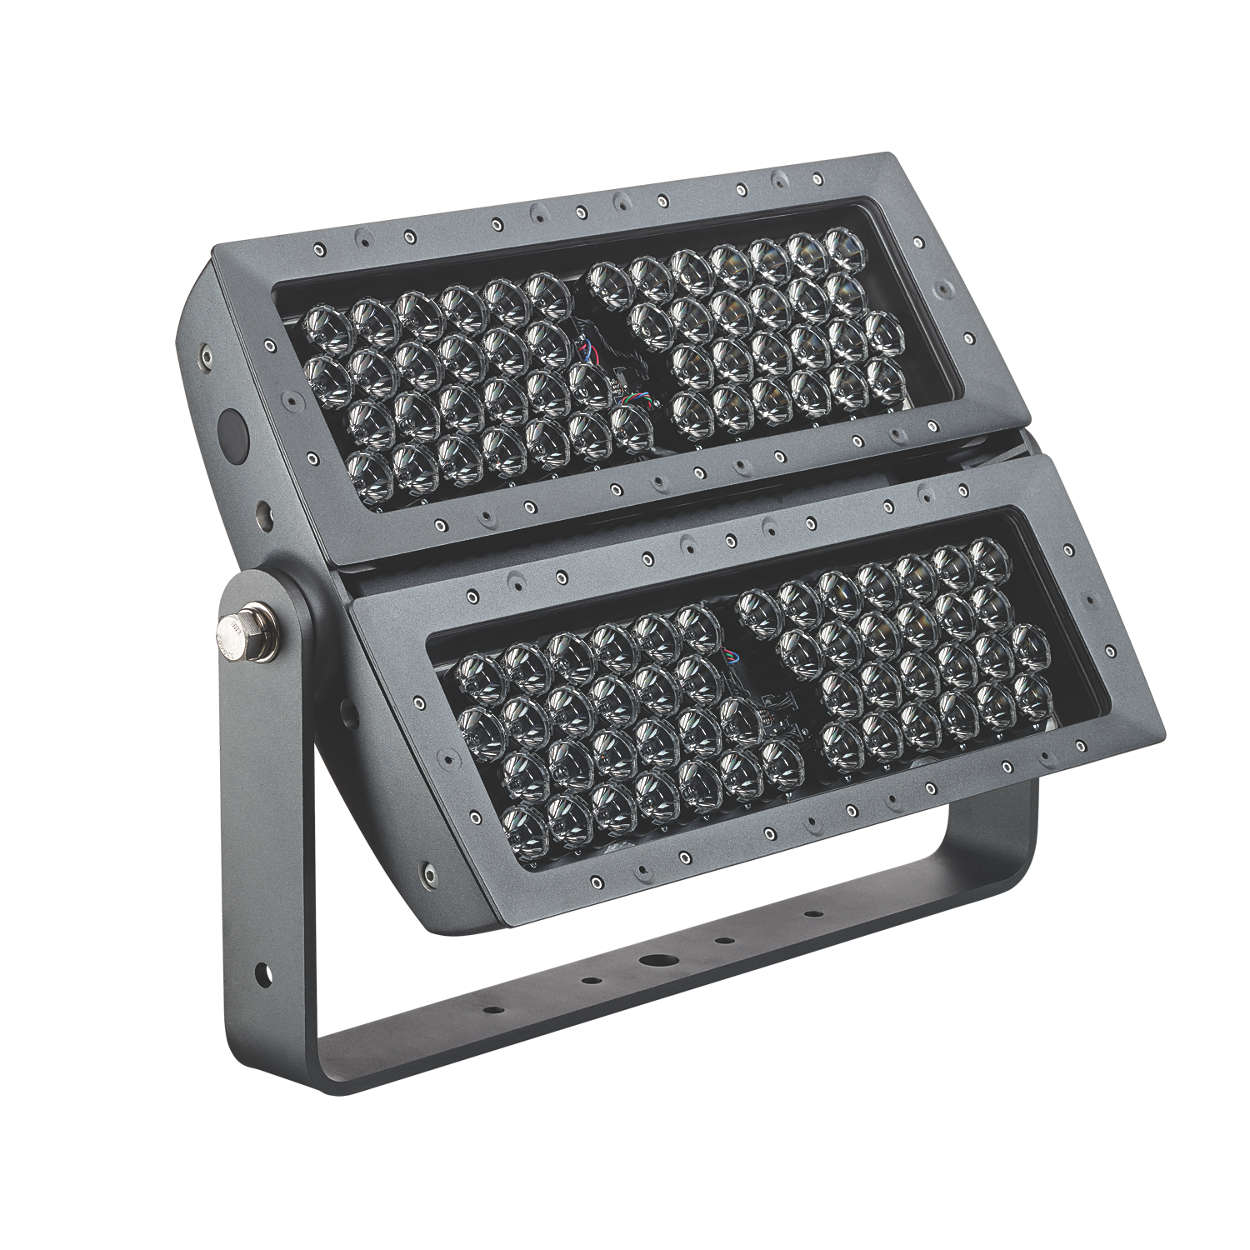 Next-generation LED floodlight for signature façades and structures